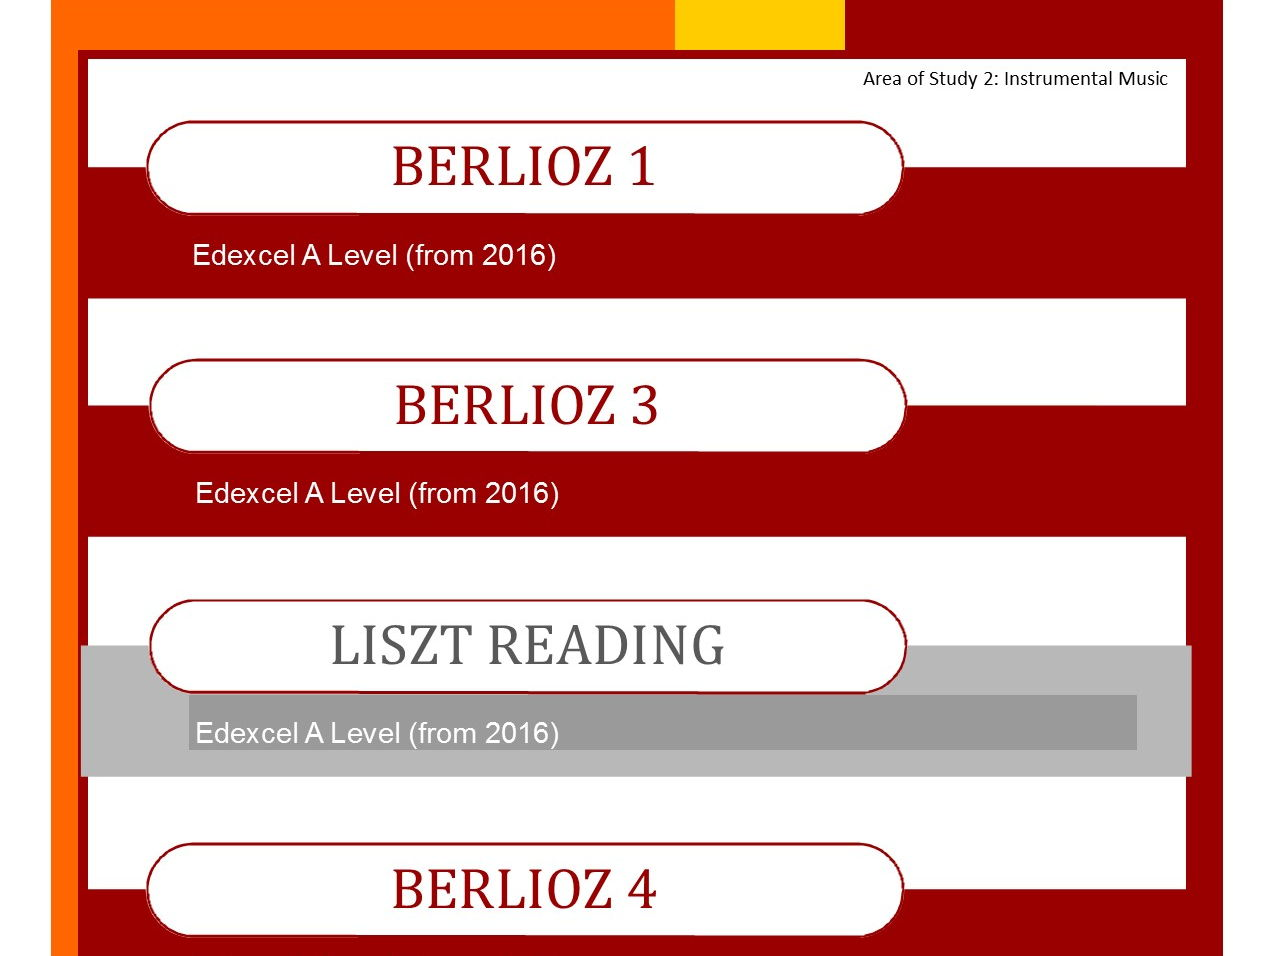 Edexcel Music A Level Four Resource Bundle Berlioz 1,3,4 and Liszt